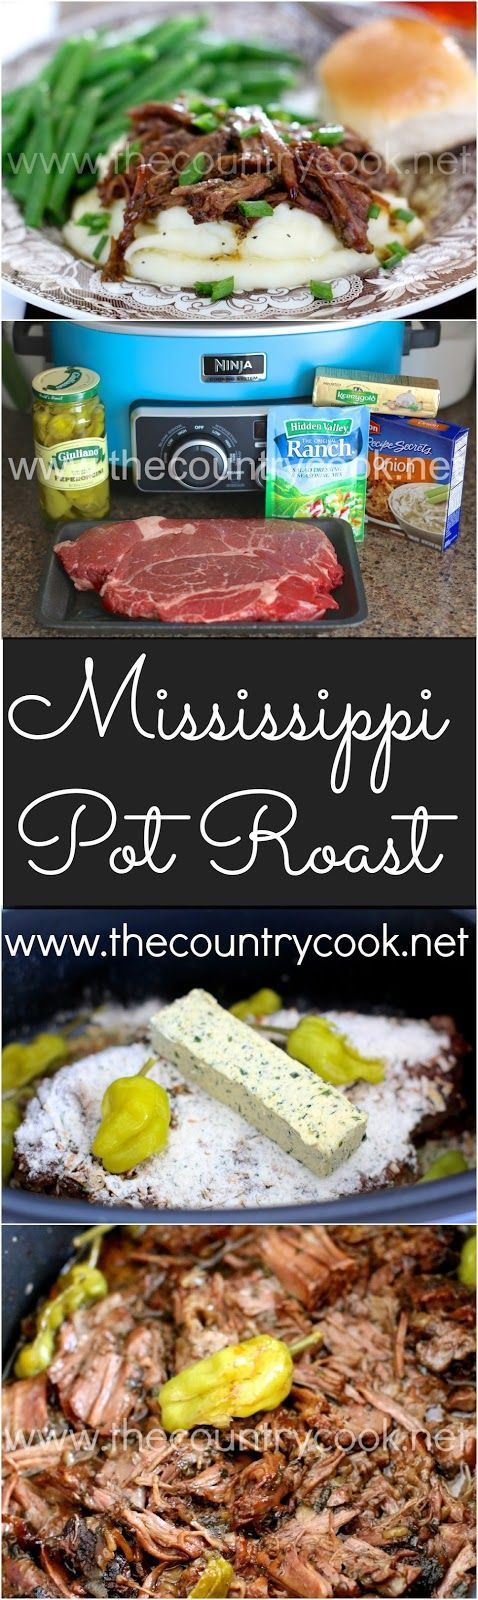 Crock Pot Mississippi Pot Roast recipe from The Country Cook - the most amazing roast I think I have ever made!